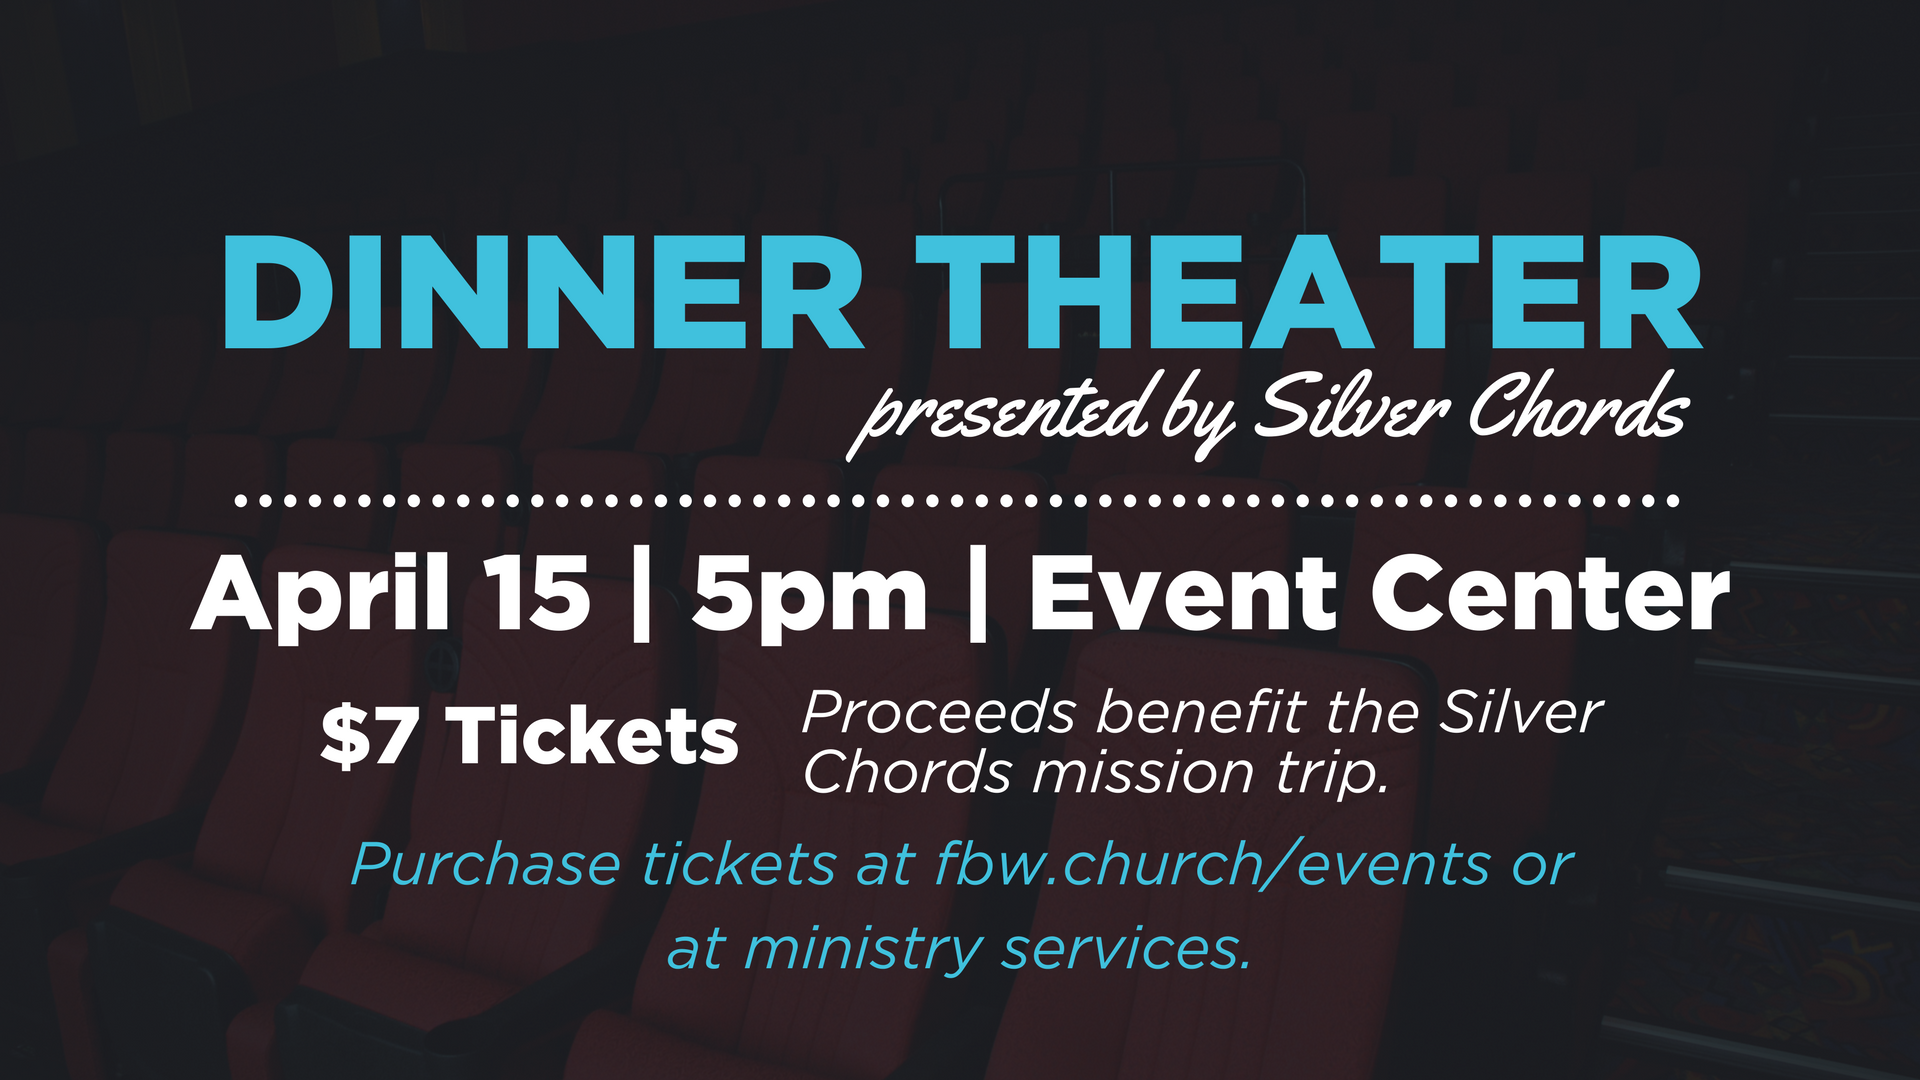 Silver chords dinner theater updated